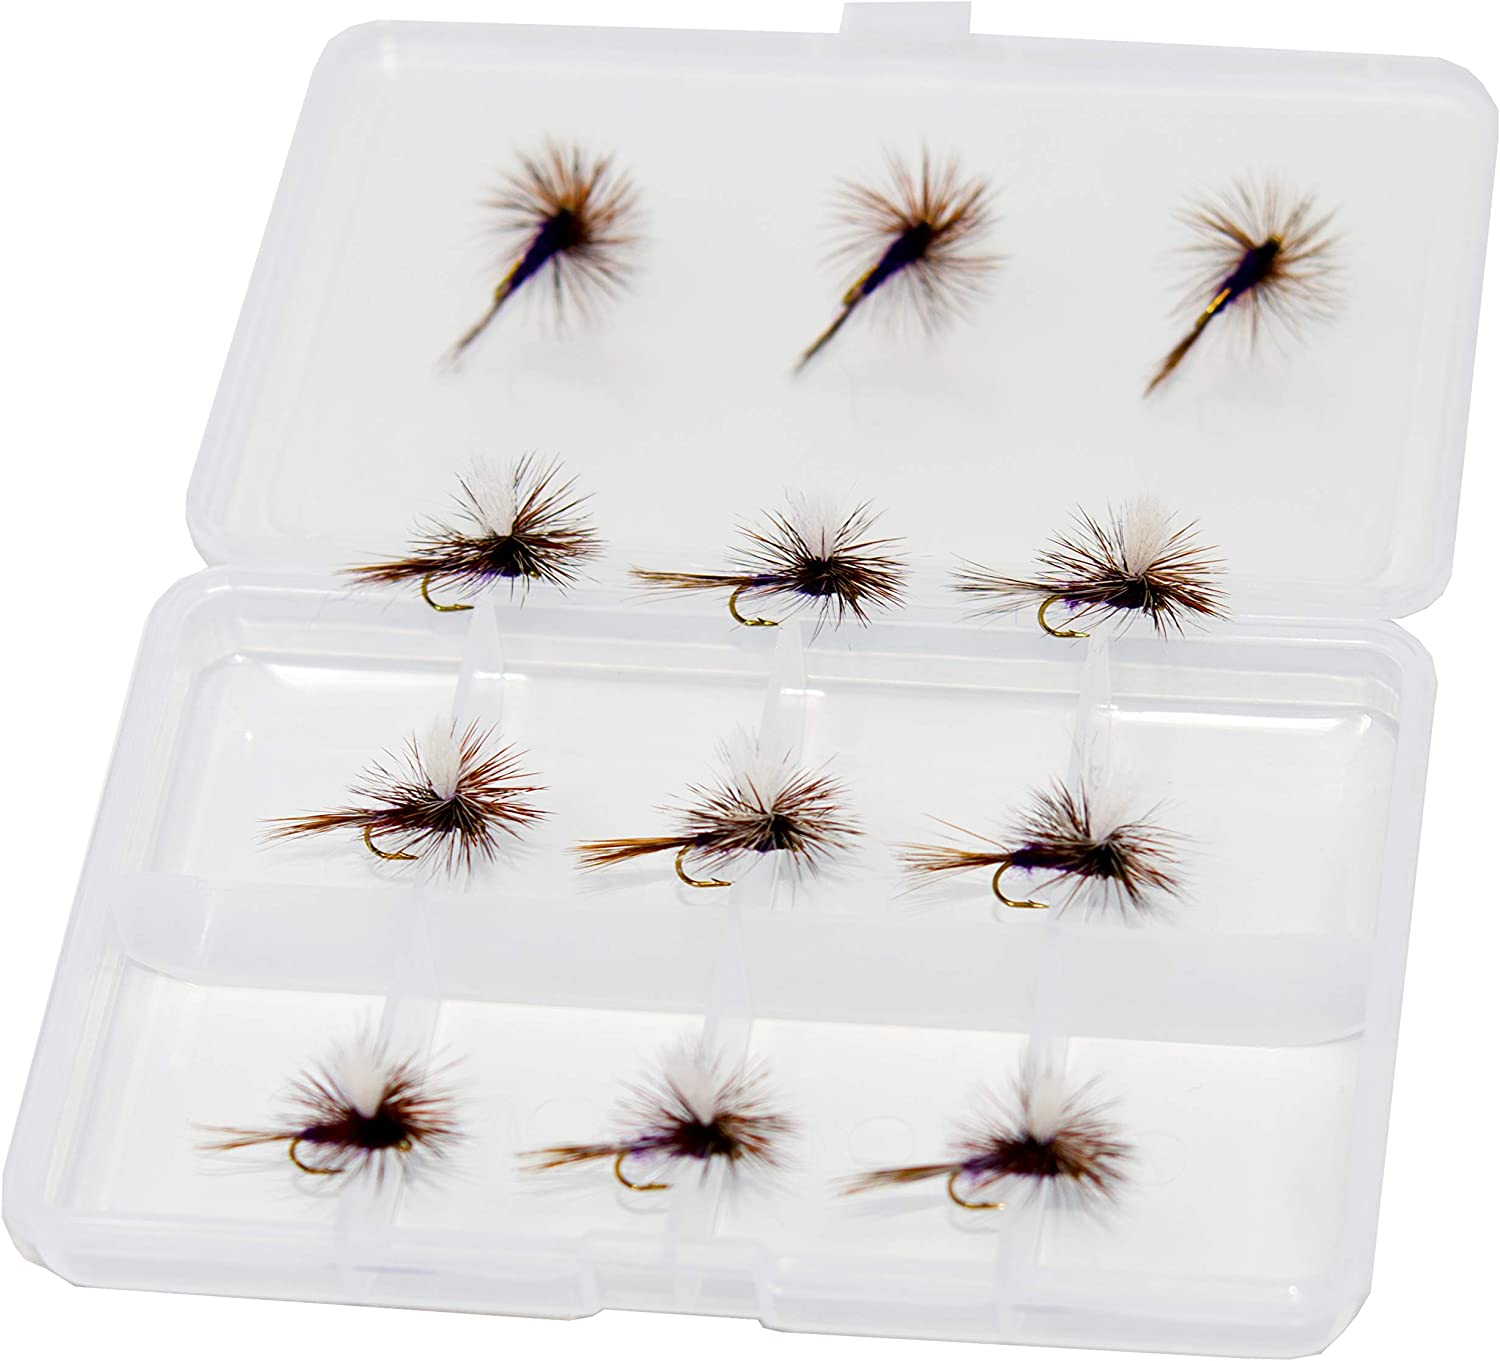 6 PCS For CDC May Fly Trout Fishing Dry Flies 12# Hooks Lure Fishing Barbed P7U1